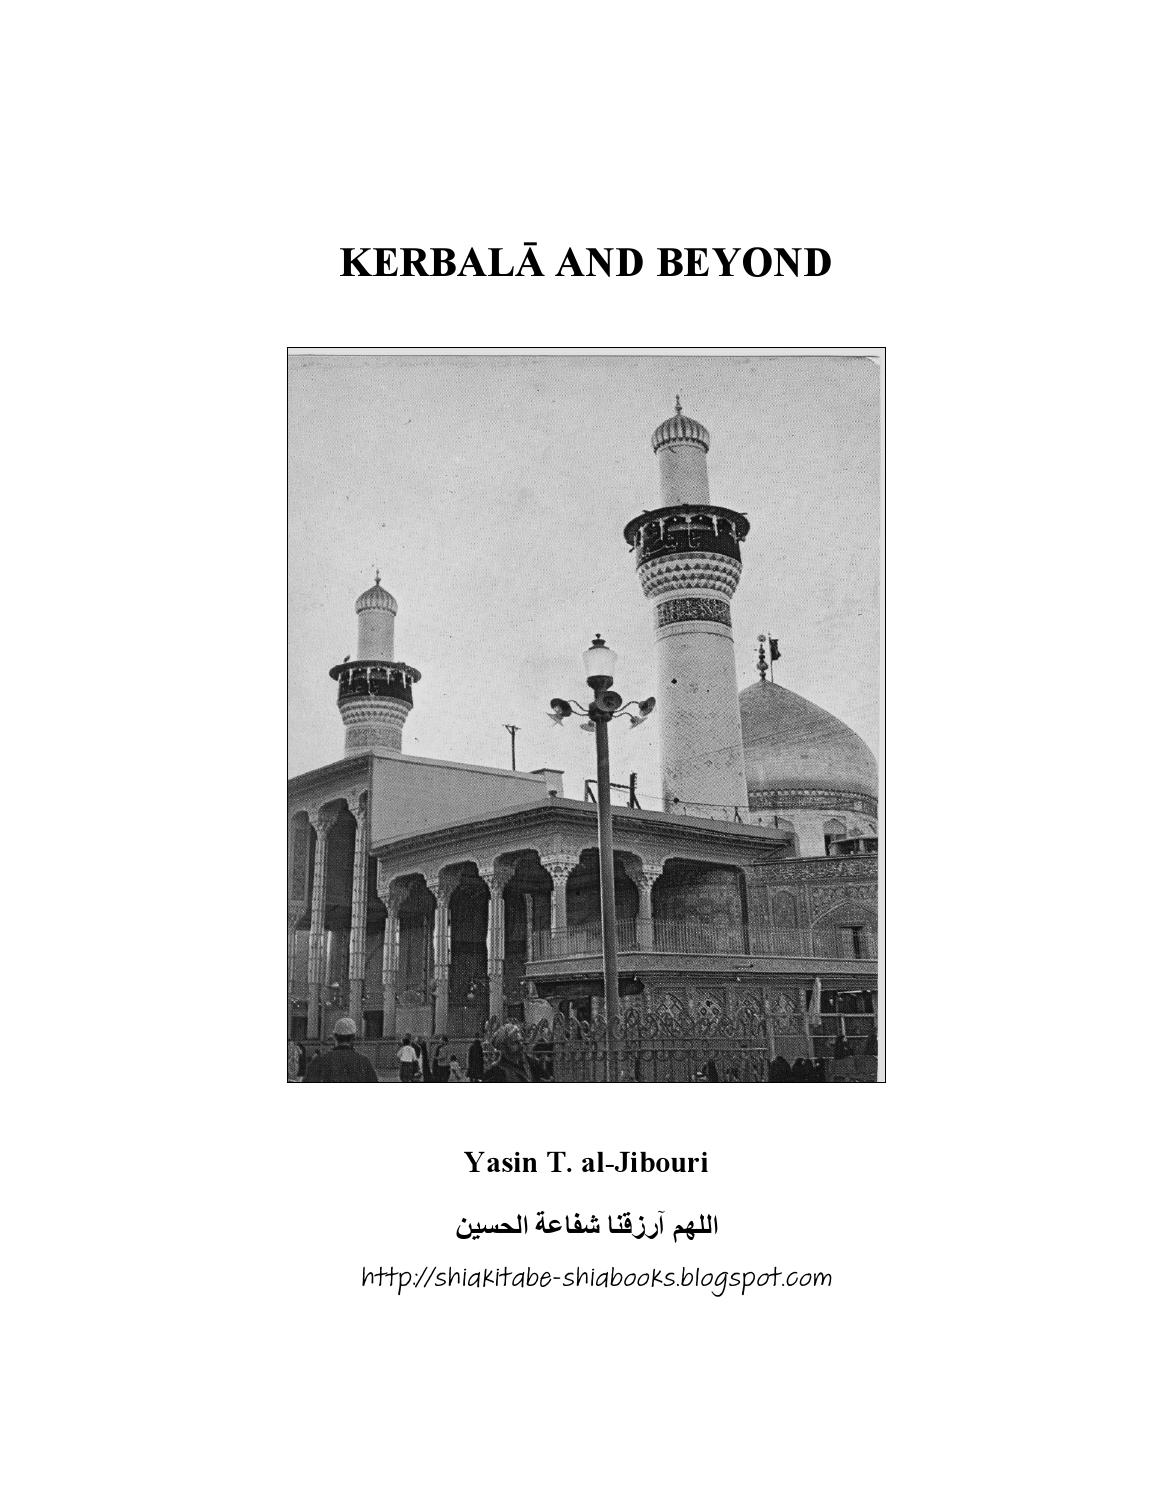 11c56327b Kerbala and beyond yasin t al jibouri by Syed Naqvi - issuu